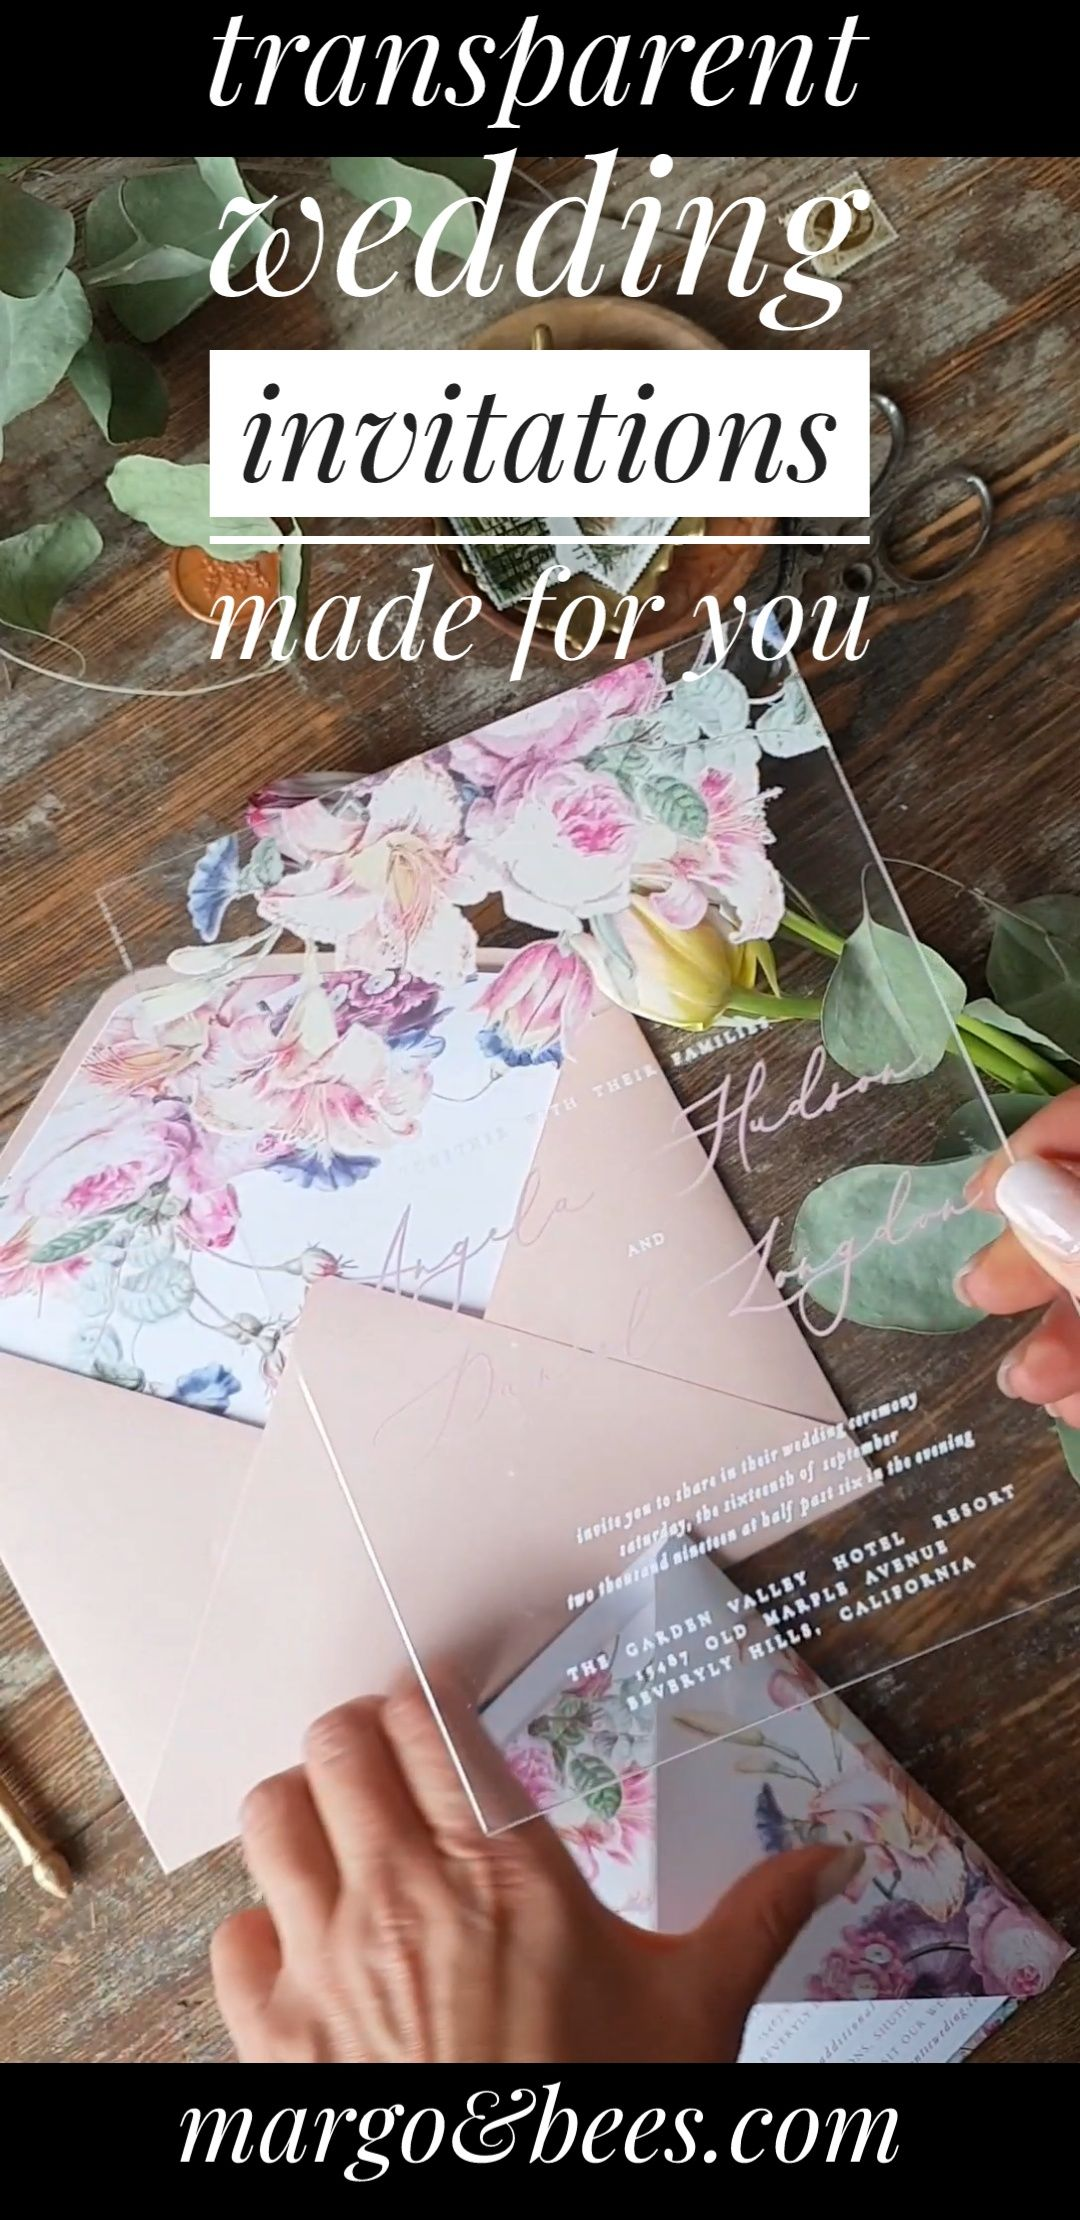 Transparent Acrylic wedding Invitation with Blush Pink envelope. Our Wedding invitation suite are completely handmade with love and care. Bespoke wedding invitations are made on your custom request. We love custom orders !